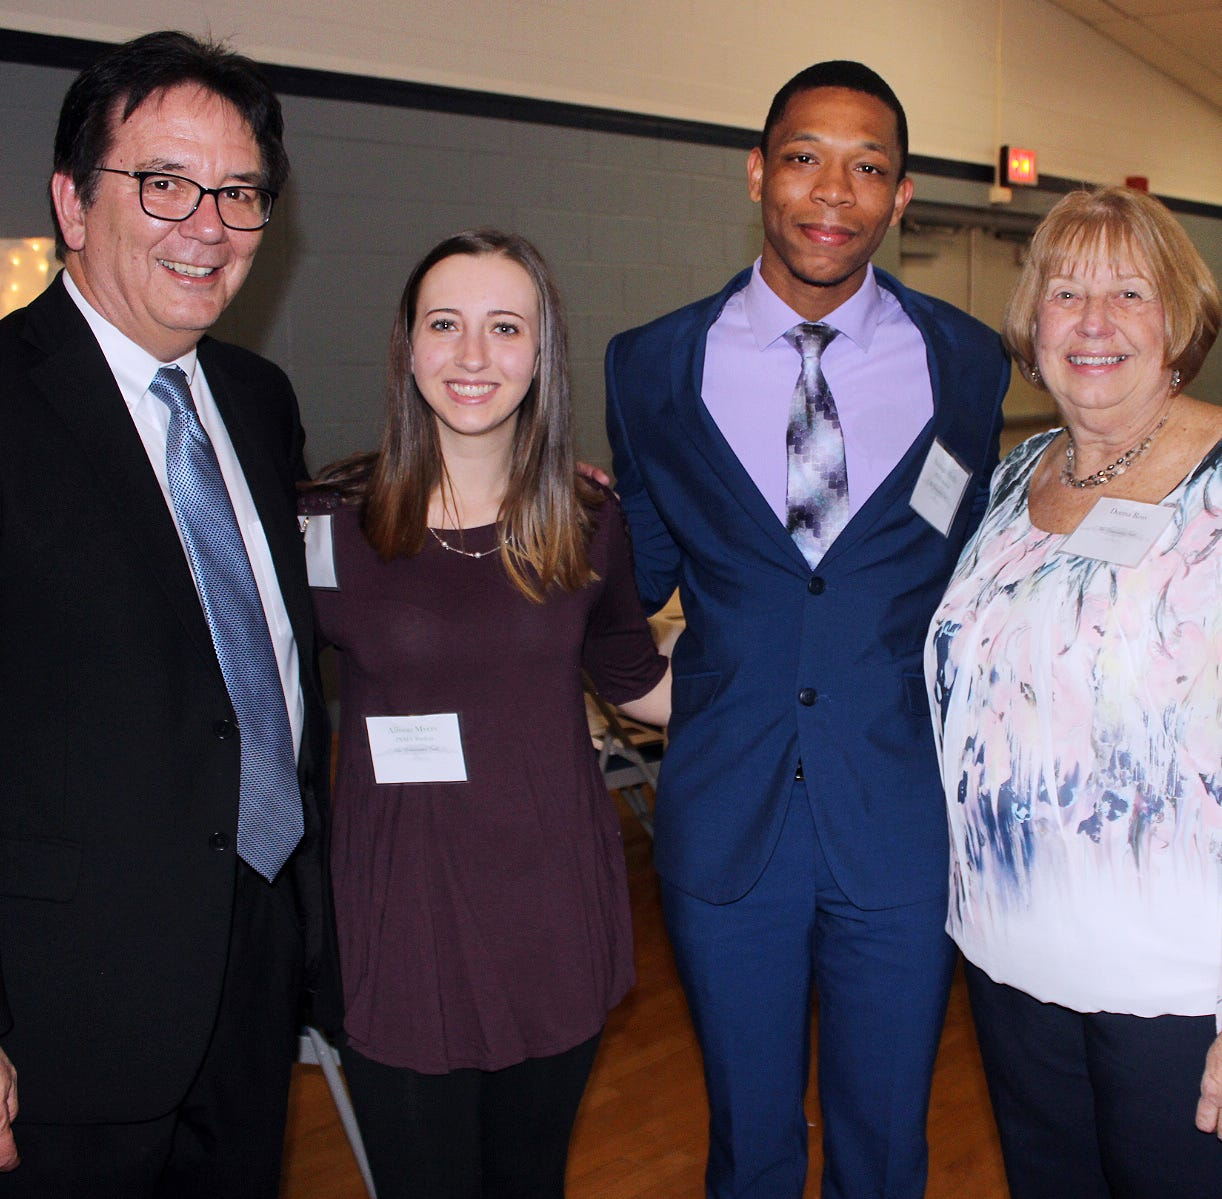 Franklin County couple's community service leads to $60K in college scholarships